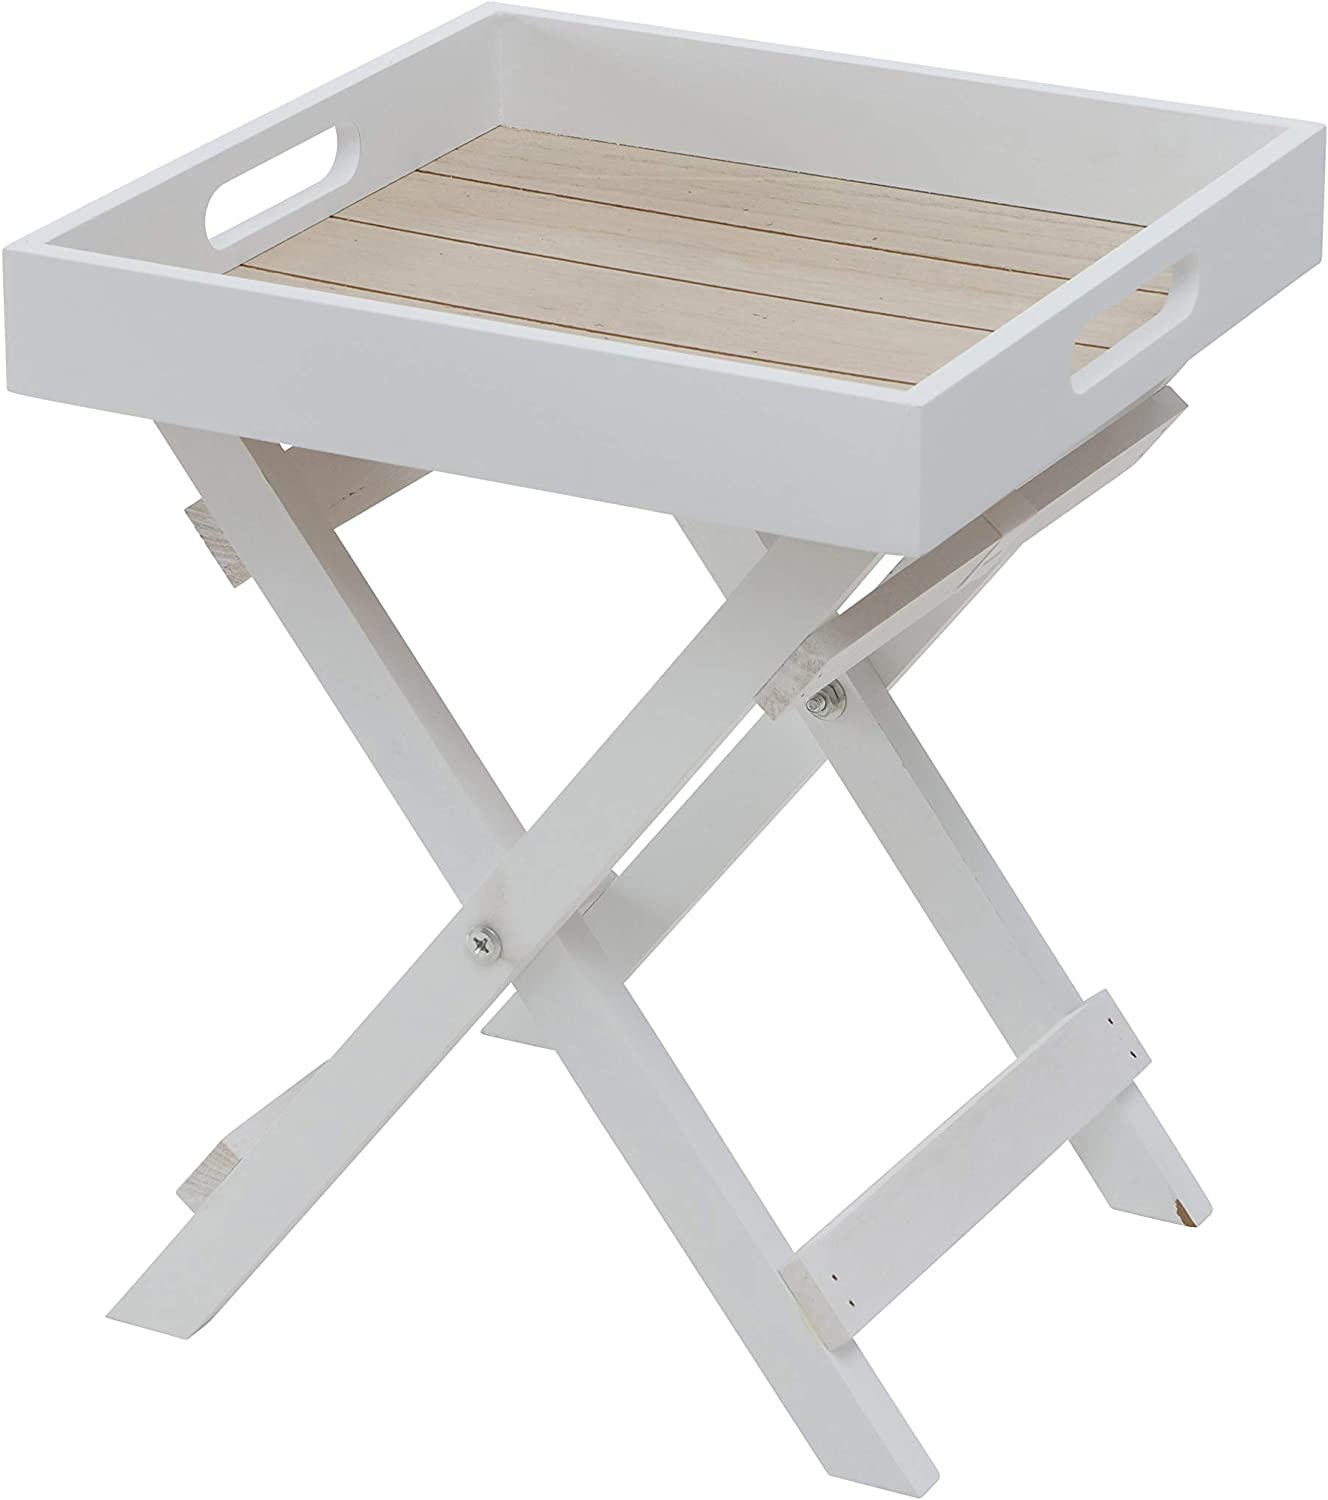 Cape Cod Cocktail Special Campaign Japan's largest assortment Tray Table White Pale Wood Tones and Natural